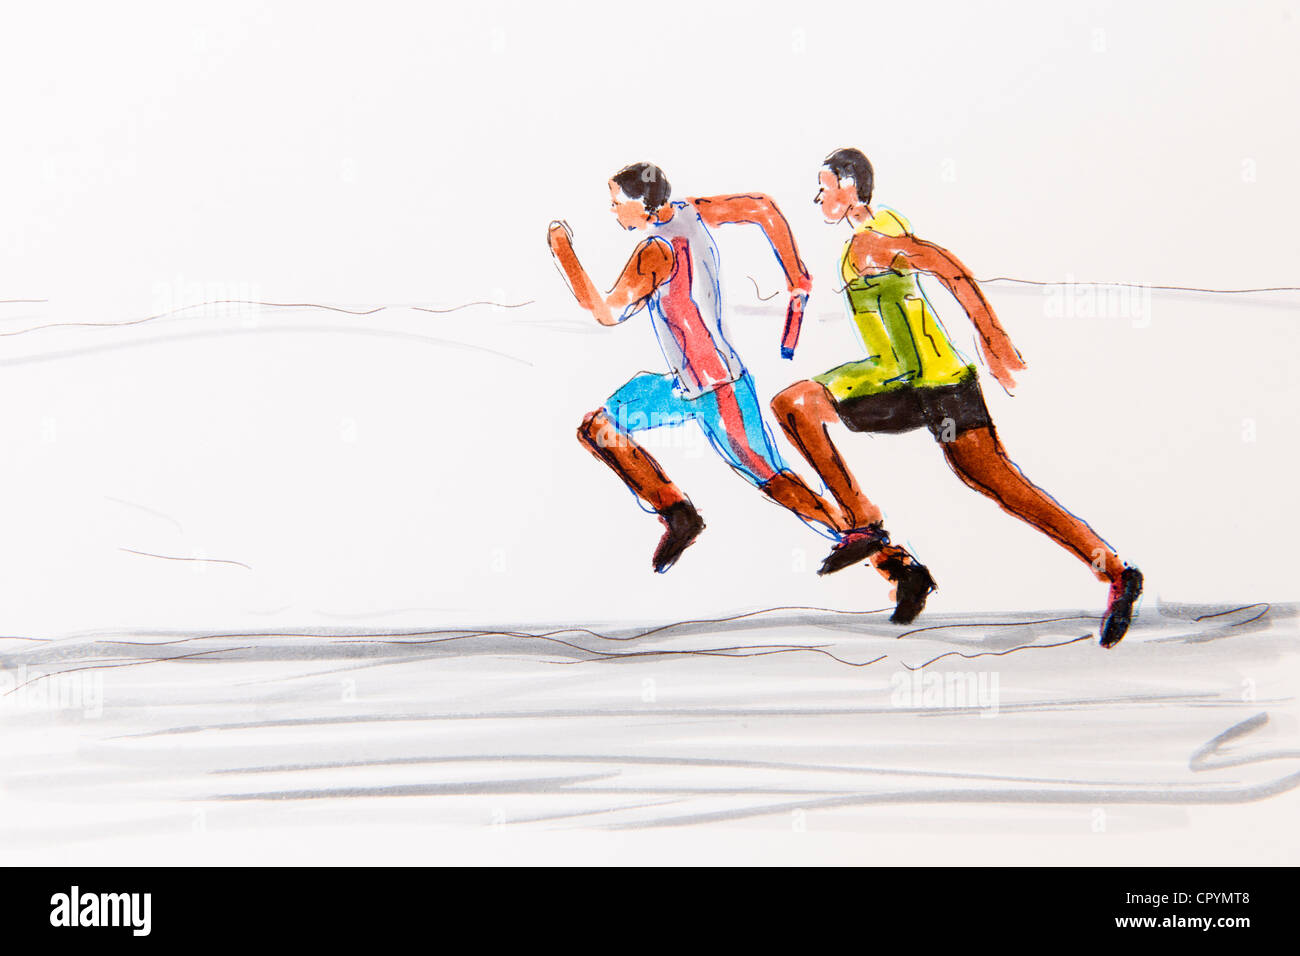 Two runners, track and field athletics, drawing by the artist Gerhard Kraus, Kriftel, illustration - Stock Image